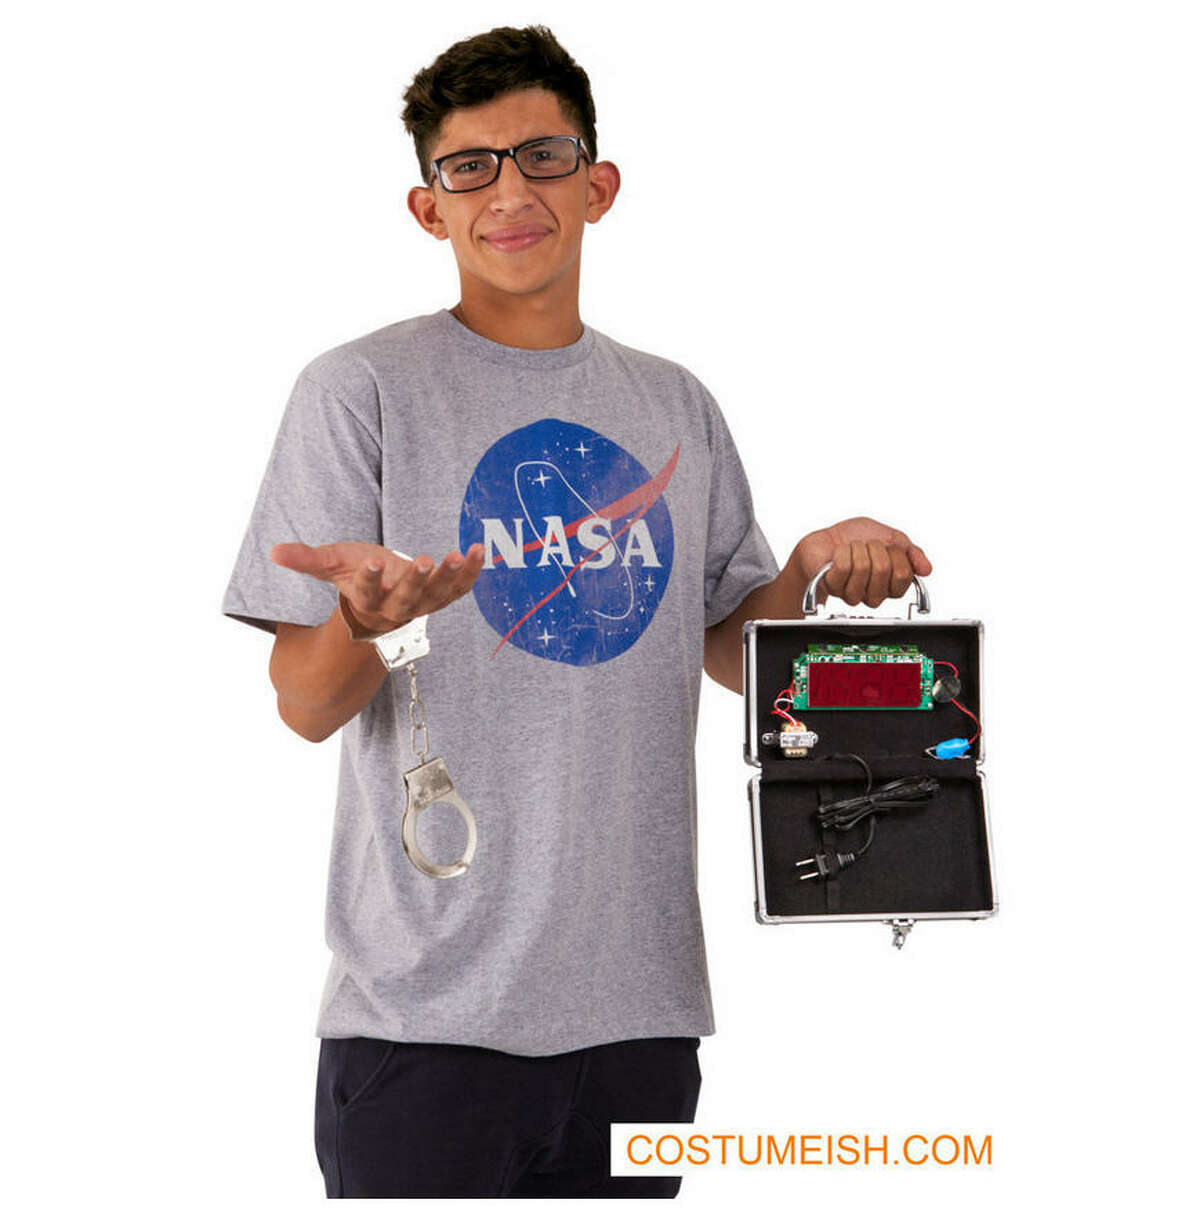 """After making national headlines for building a """"homemade clock bomb, Ahmed Mohamed is now a possible Halloweencostume."""